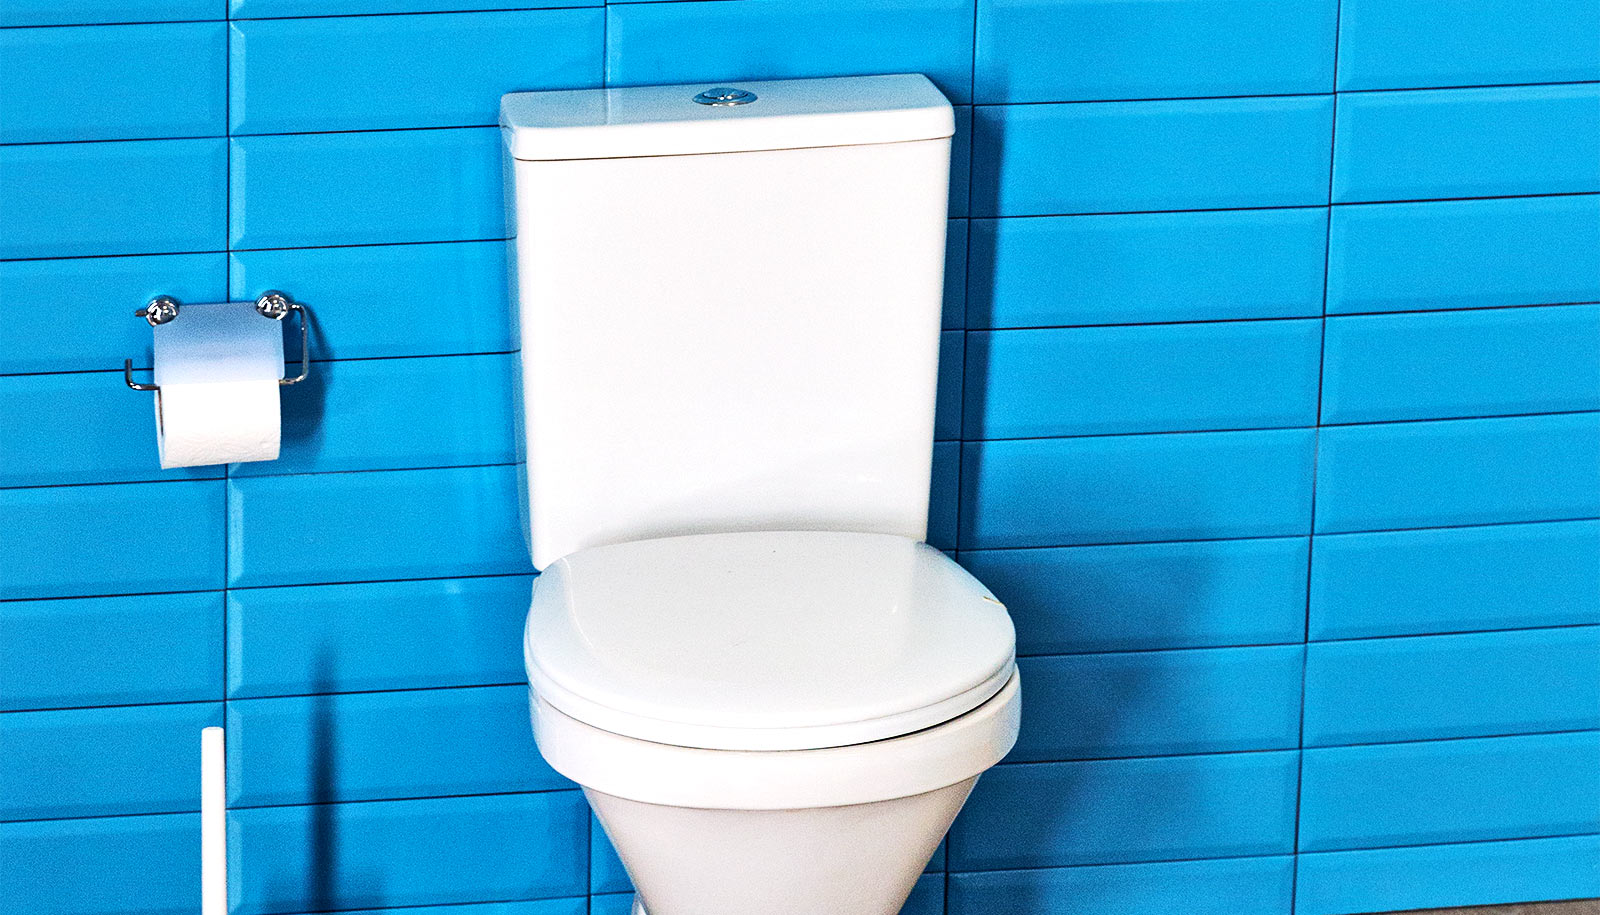 Coating lets toilets clean themselves and save water